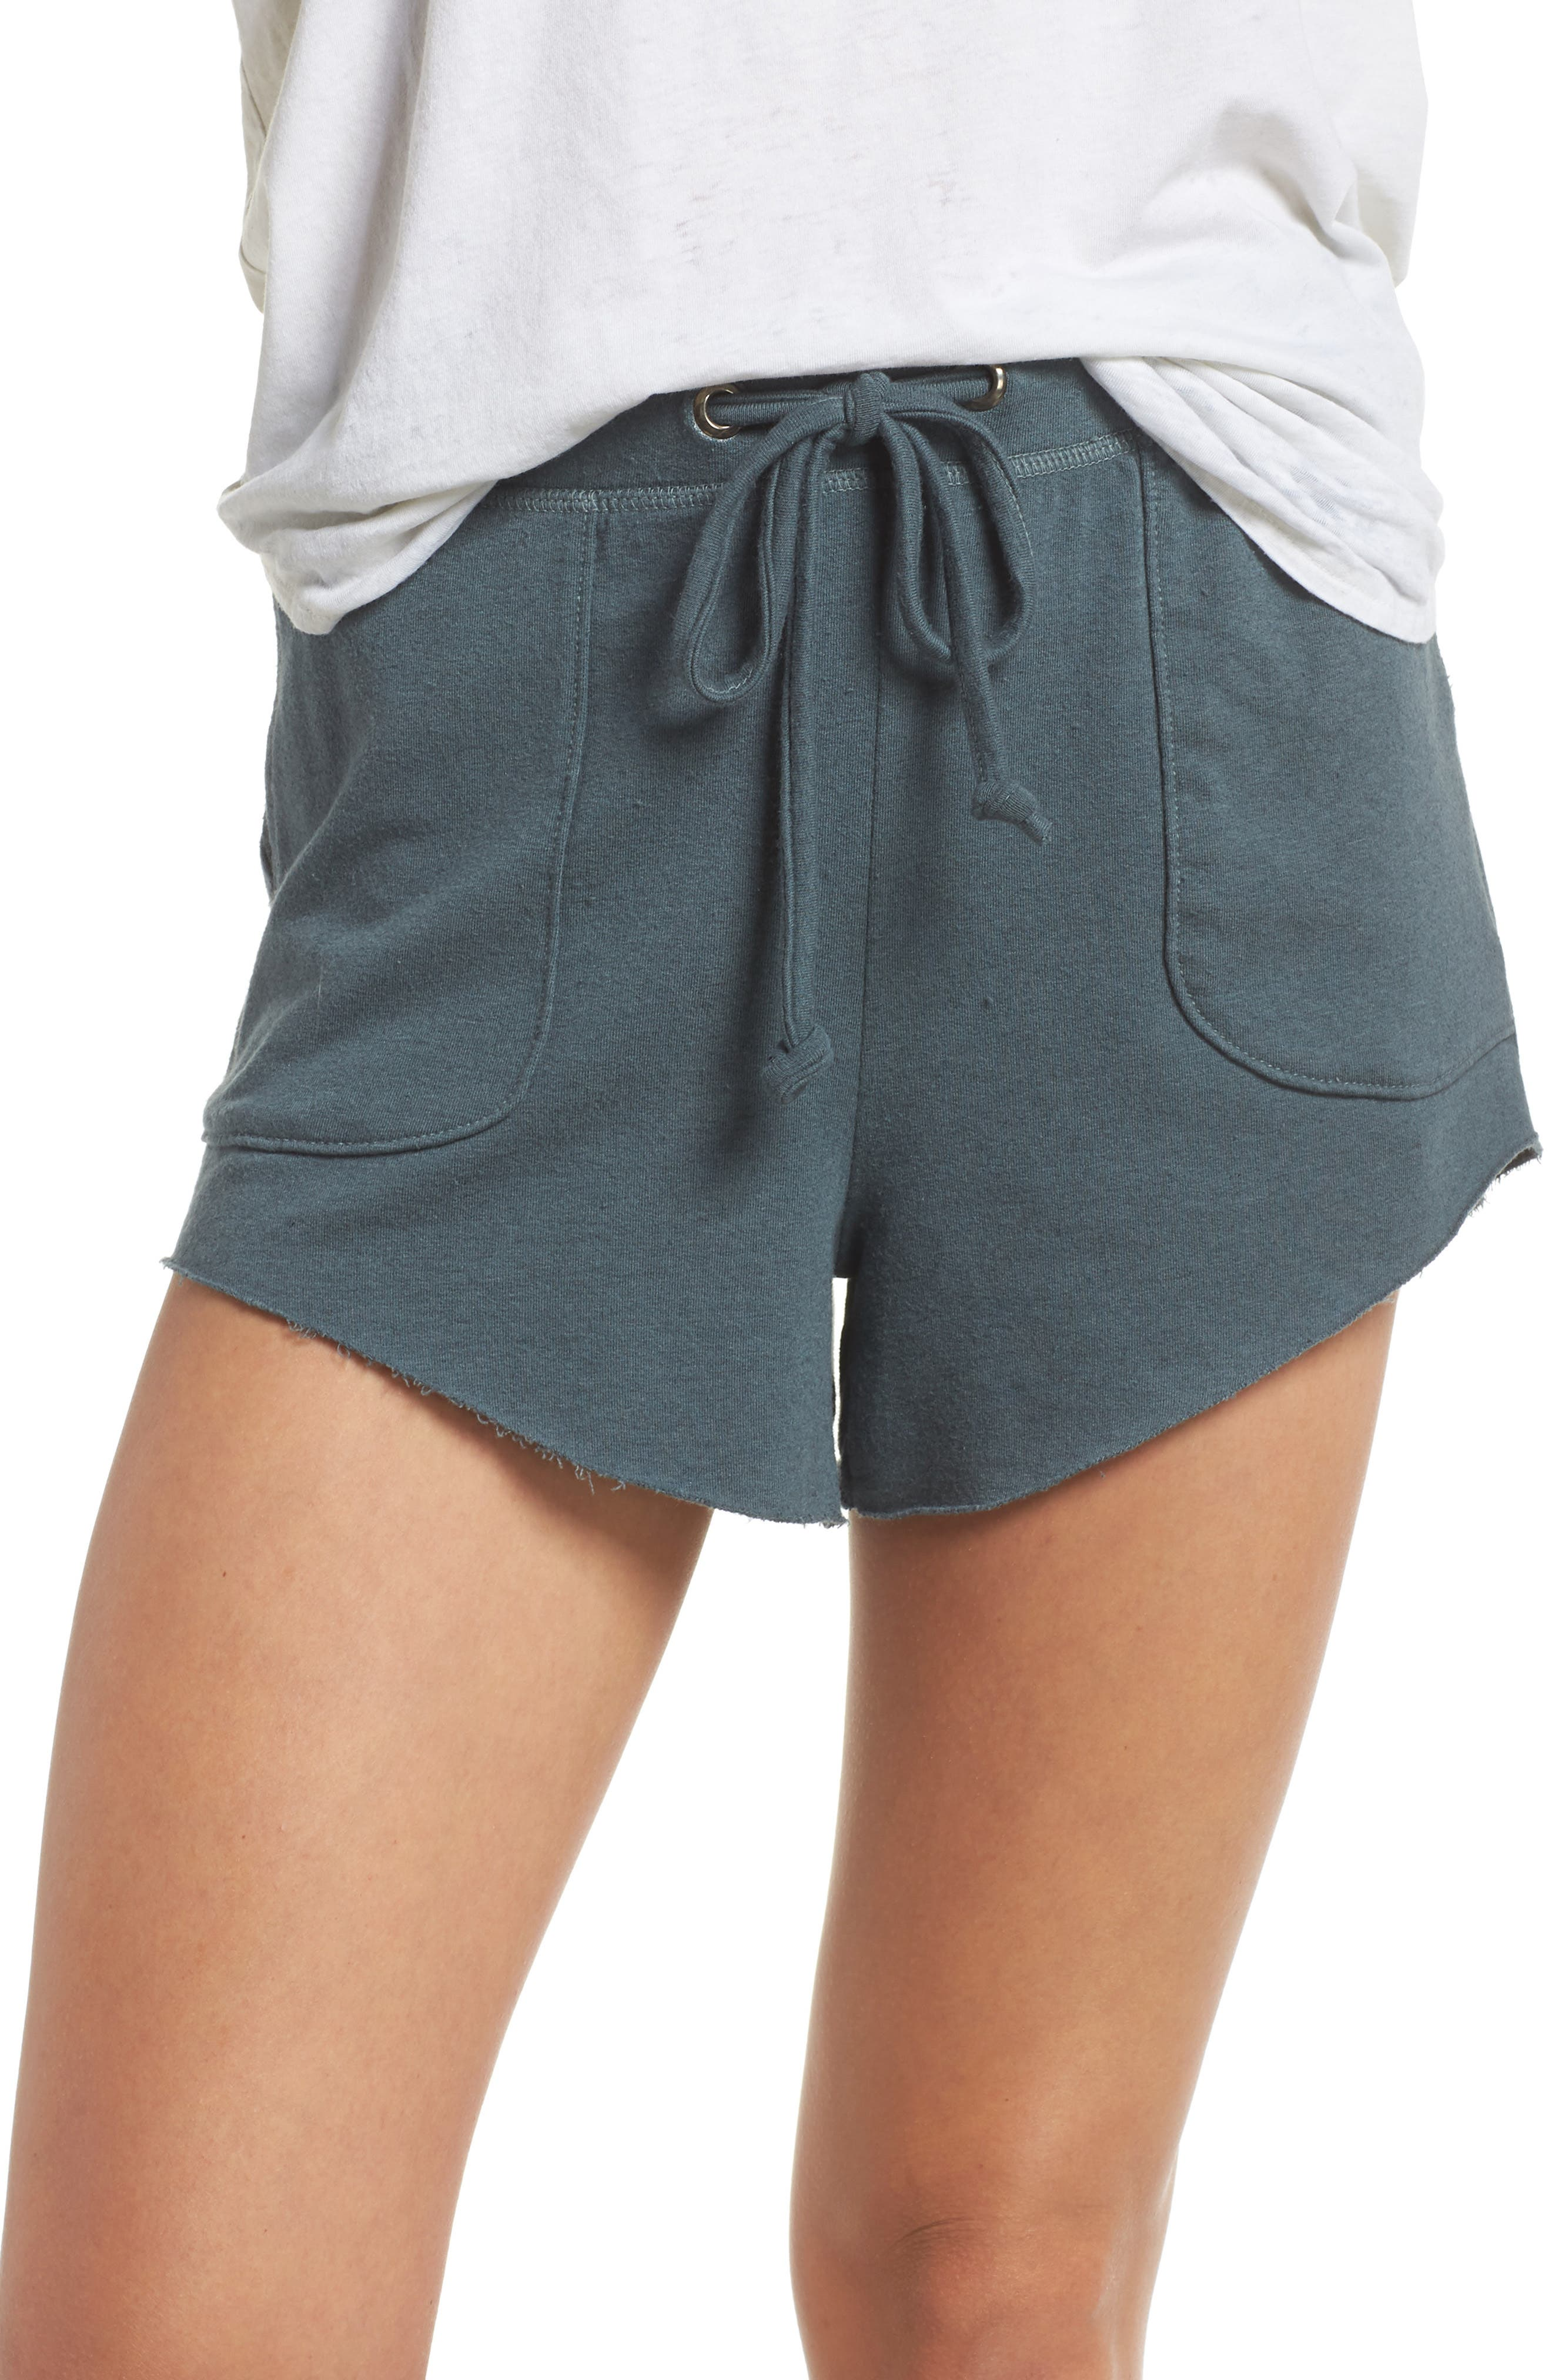 Alternate Image 1 Selected - Junk Food Raw Cut Lounge Shorts